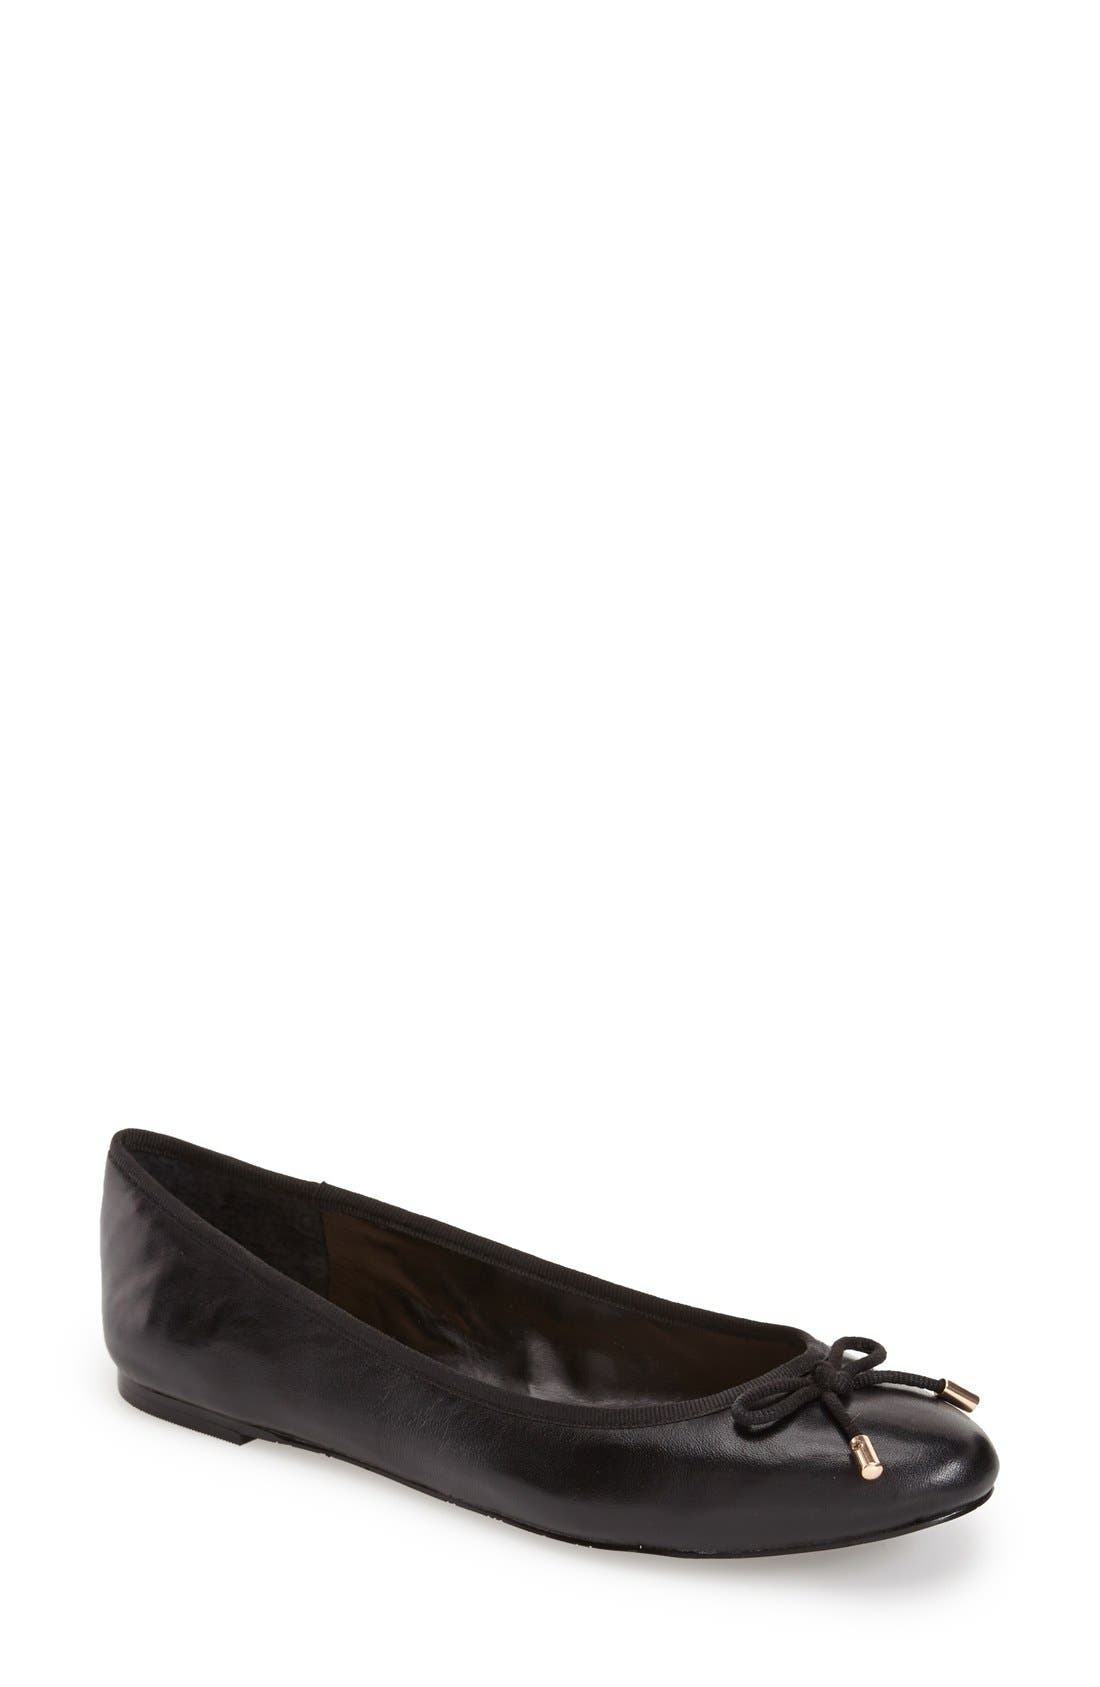 Alternate Image 1 Selected - Sole Society 'Natalie' Leather Ballet Flat (Women)